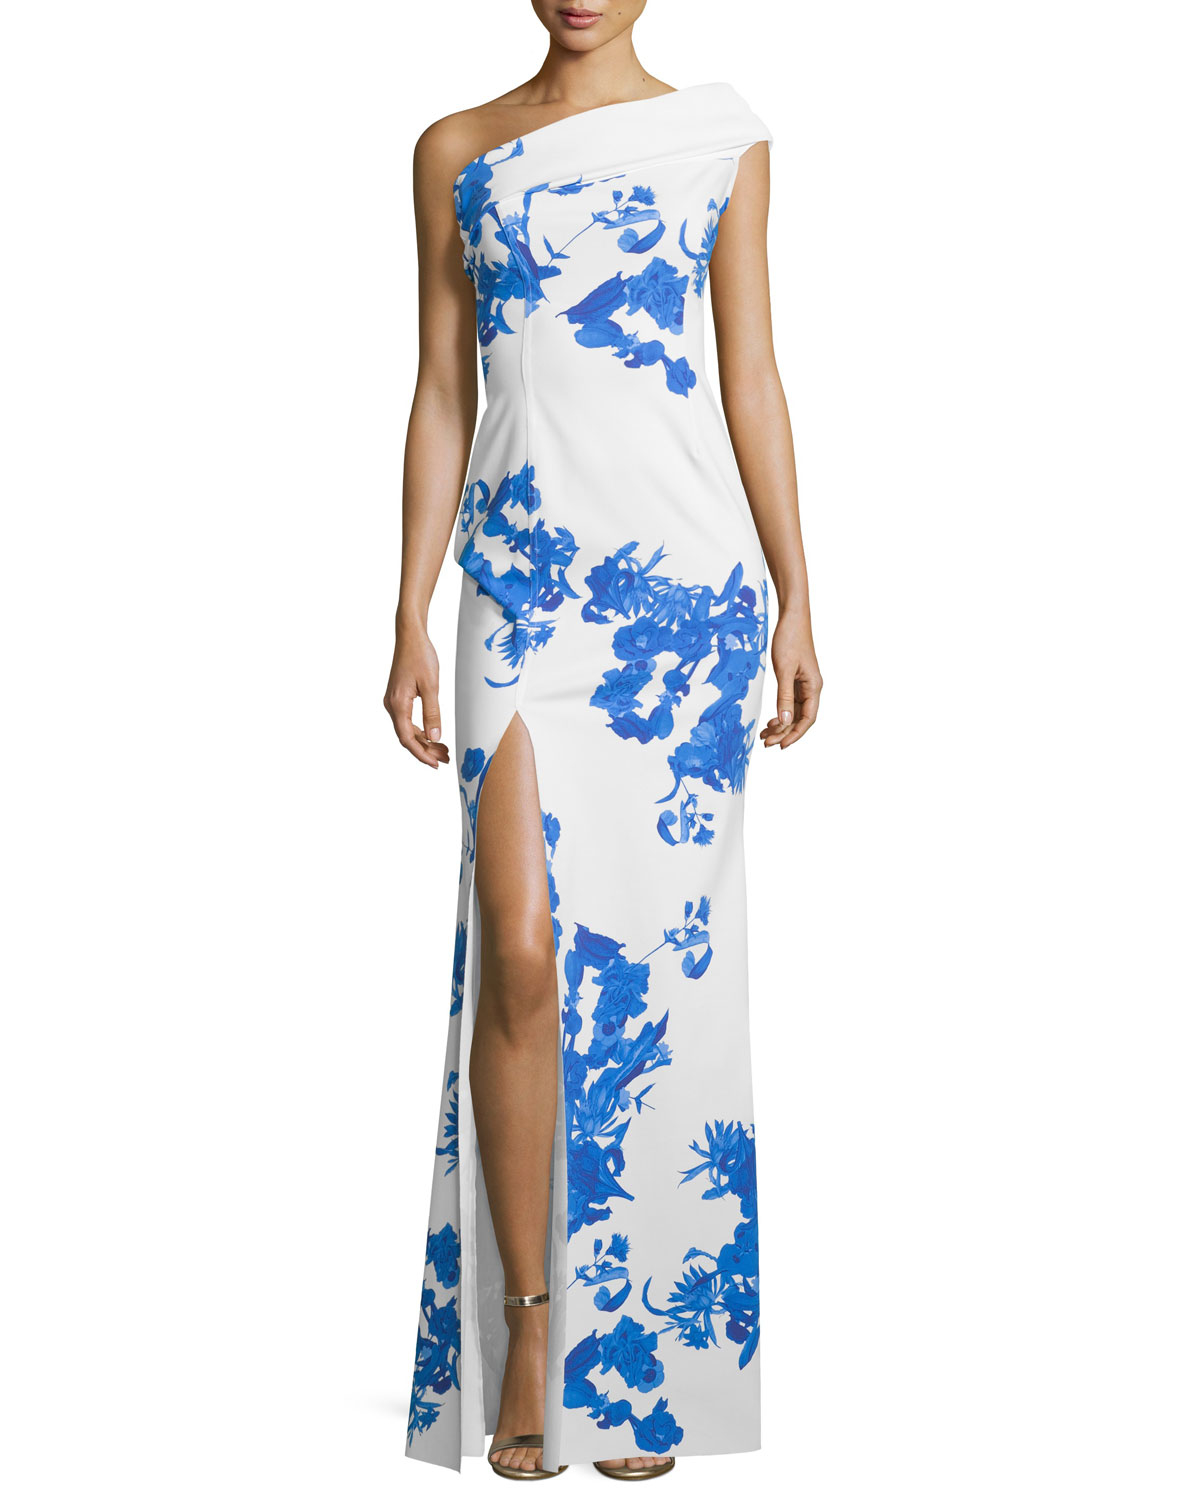 Chiara Boni The Most Popular Dress In America: La Petite Robe Di Chiara Boni Malinda One-shoulder Floral